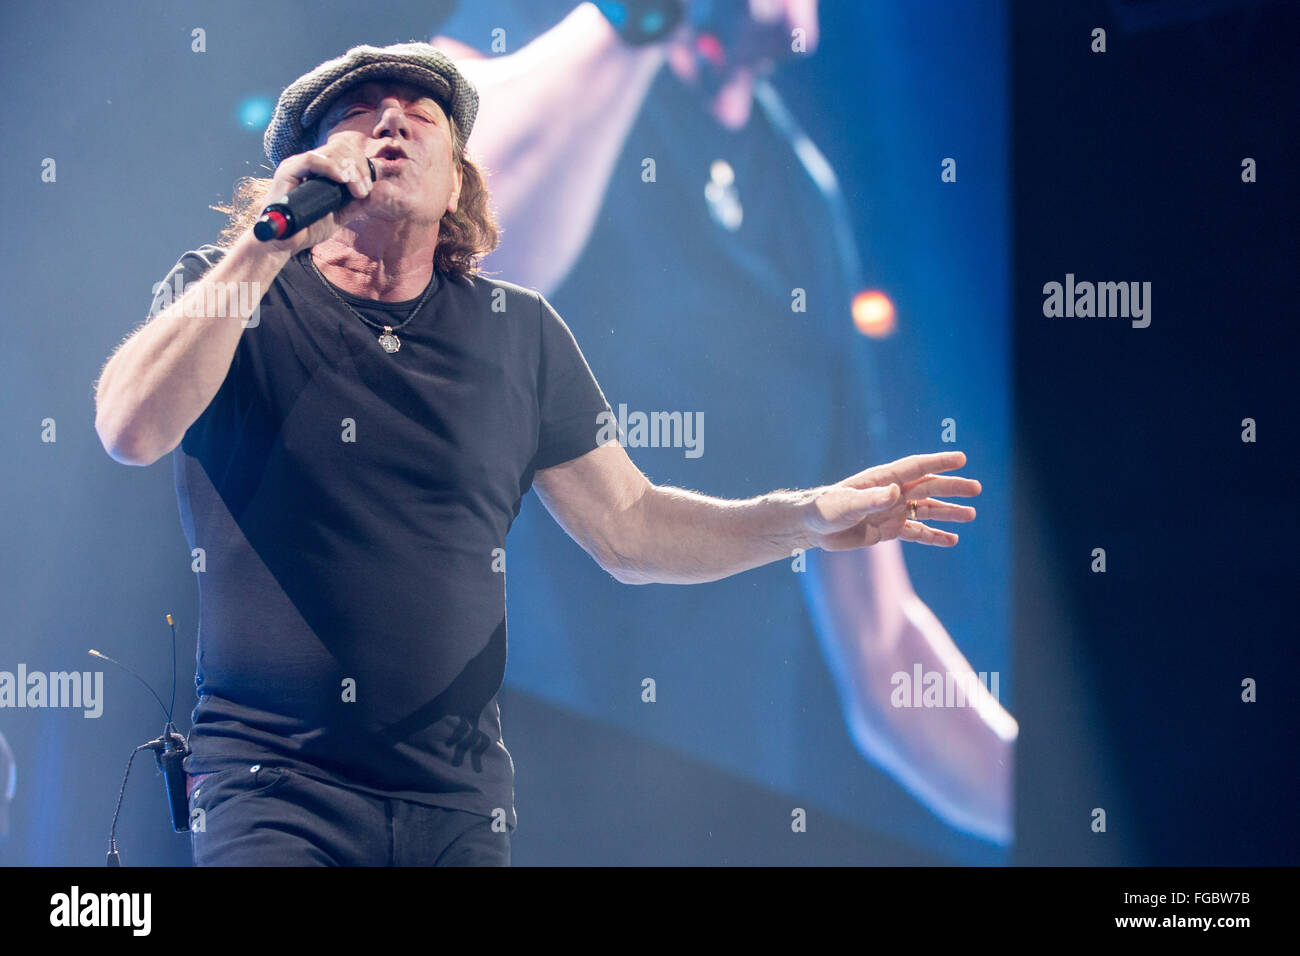 Ac Dc Performs On Rock Bust Stock Photos & Ac Dc Performs On Rock ...